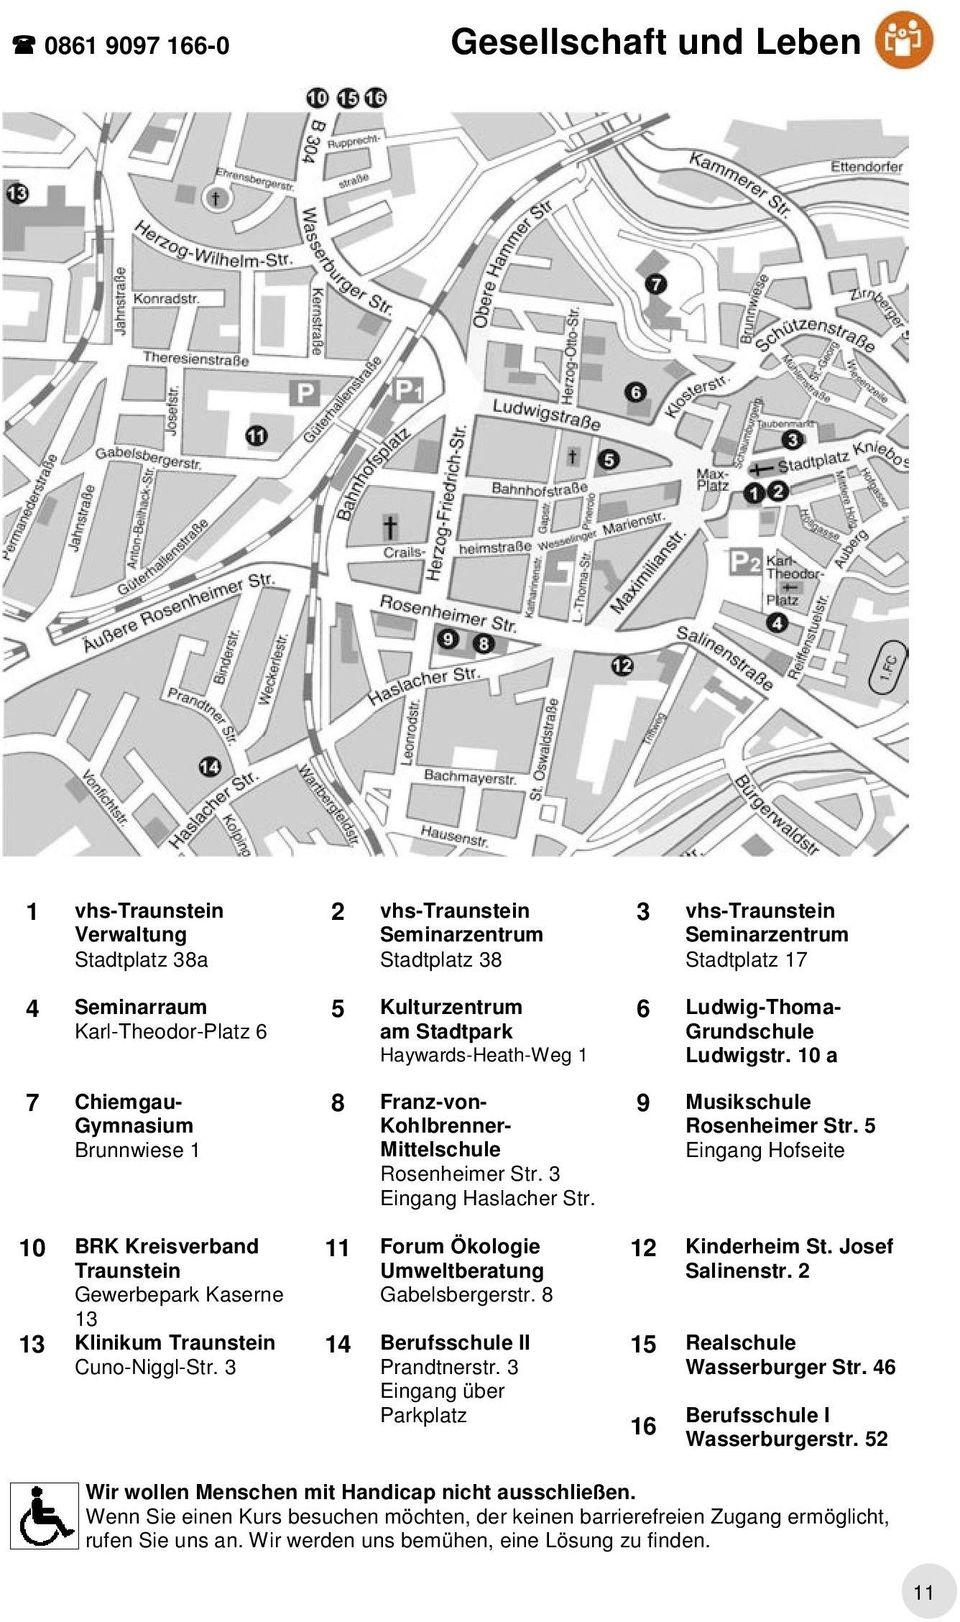 3 2 vhs-traunstein Seminarzentrum Stadtplatz 38 5 Kulturzentrum am Stadtpark Haywards-Heath-Weg 1 8 Franz-von- Kohlbrenner- Mittelschule Rosenheimer Str. 3 Eingang Haslacher Str.